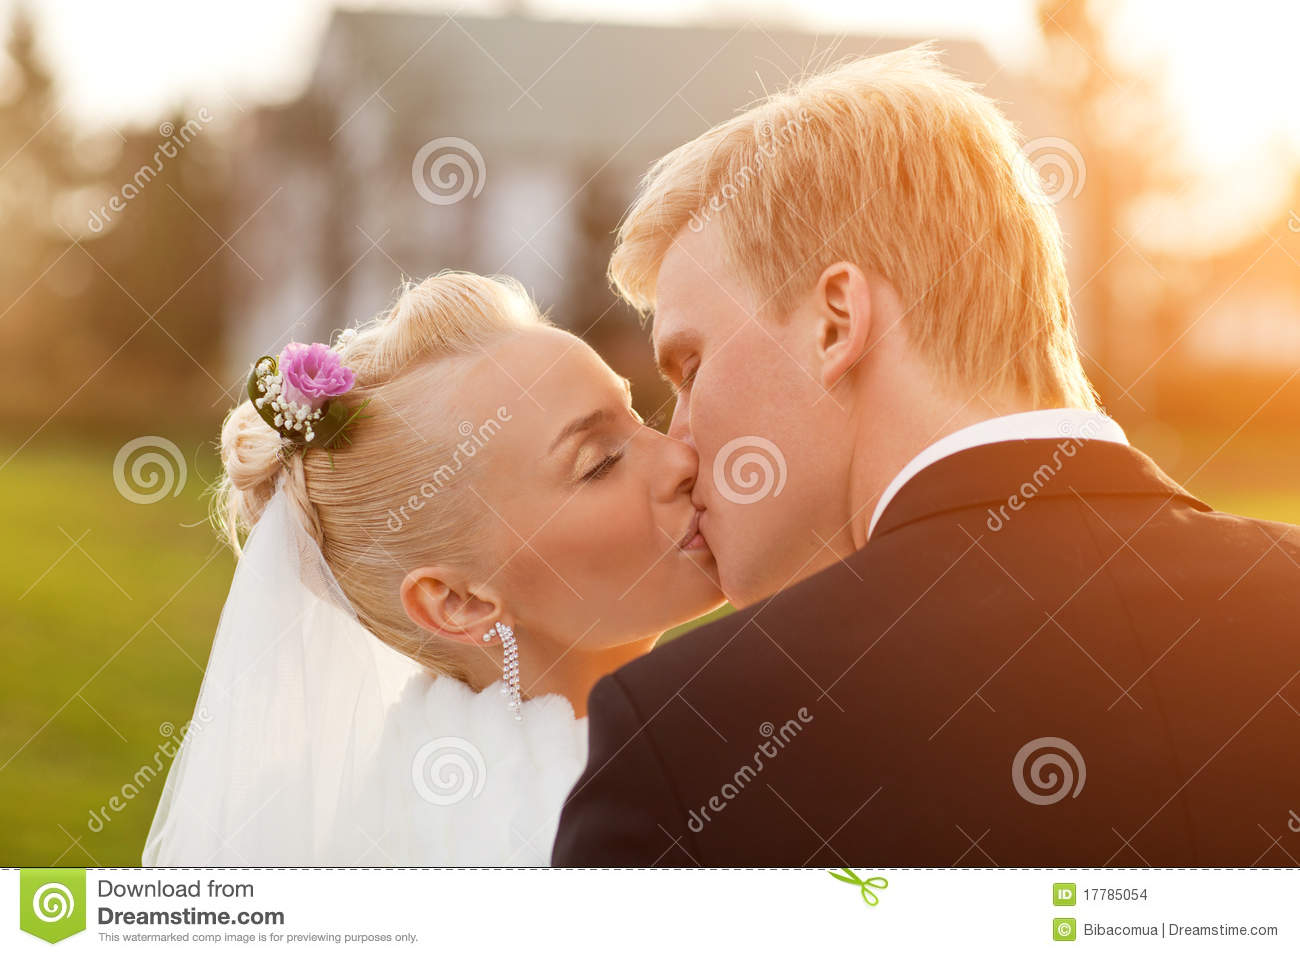 Just Married Couple Stock Photo Image Of Bride Hairstyle